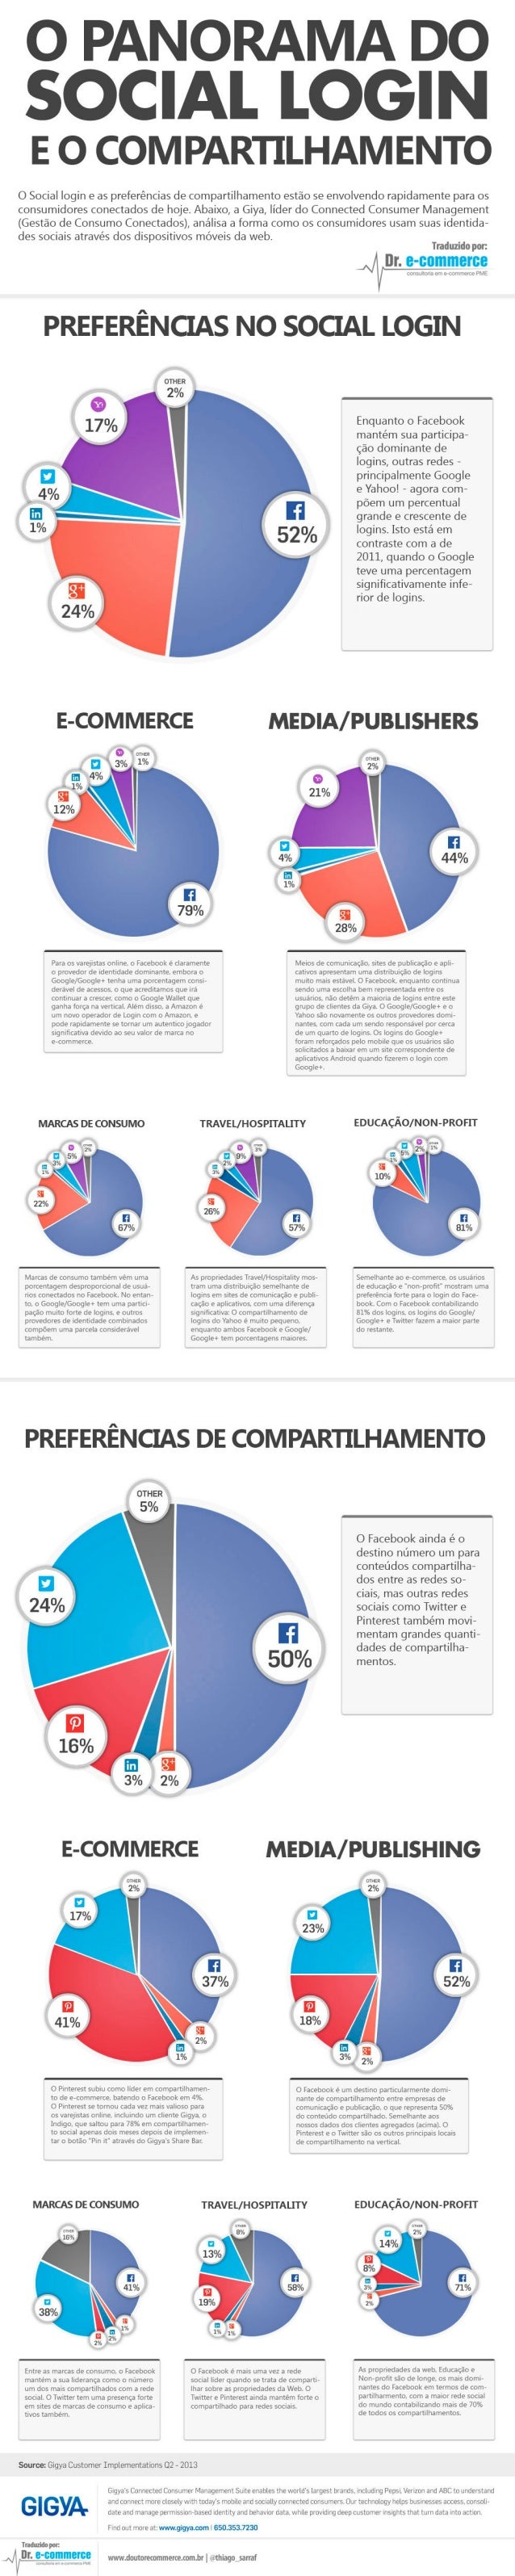 O Panorama do Social Login e o Compartilhamento - Infográfico